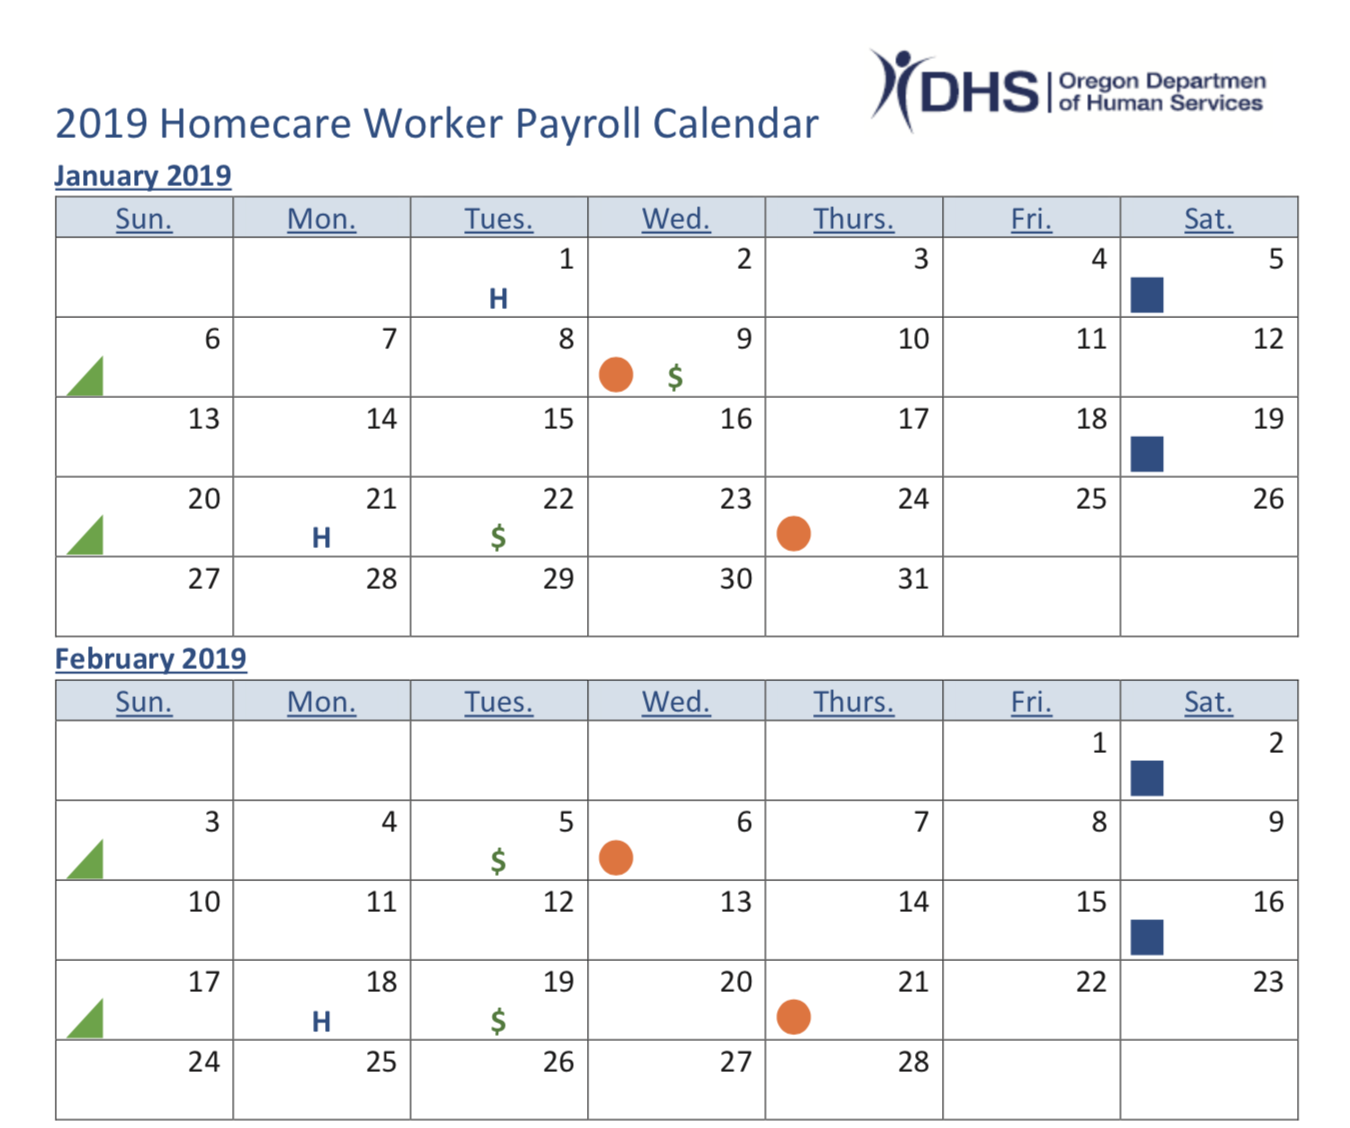 Seiu503 Local | Have You Seen The 2019 Pay And Voucher Schedule? for Hcw Payroll Calendar Oregon